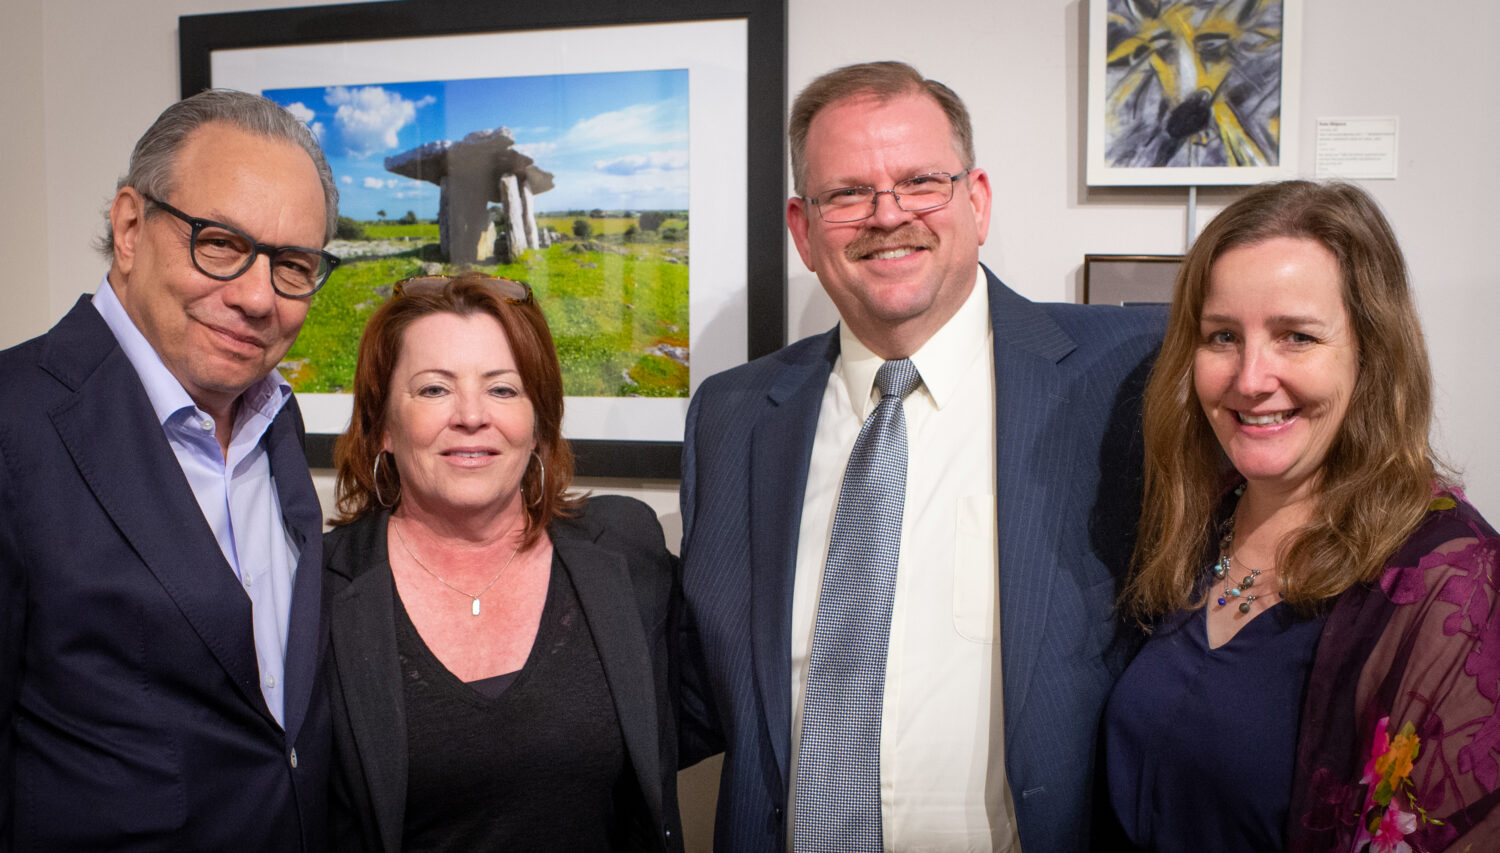 Kathleen Madigan and Lewis Black pose with MU chancellor Alexander Cartwright and his wife.